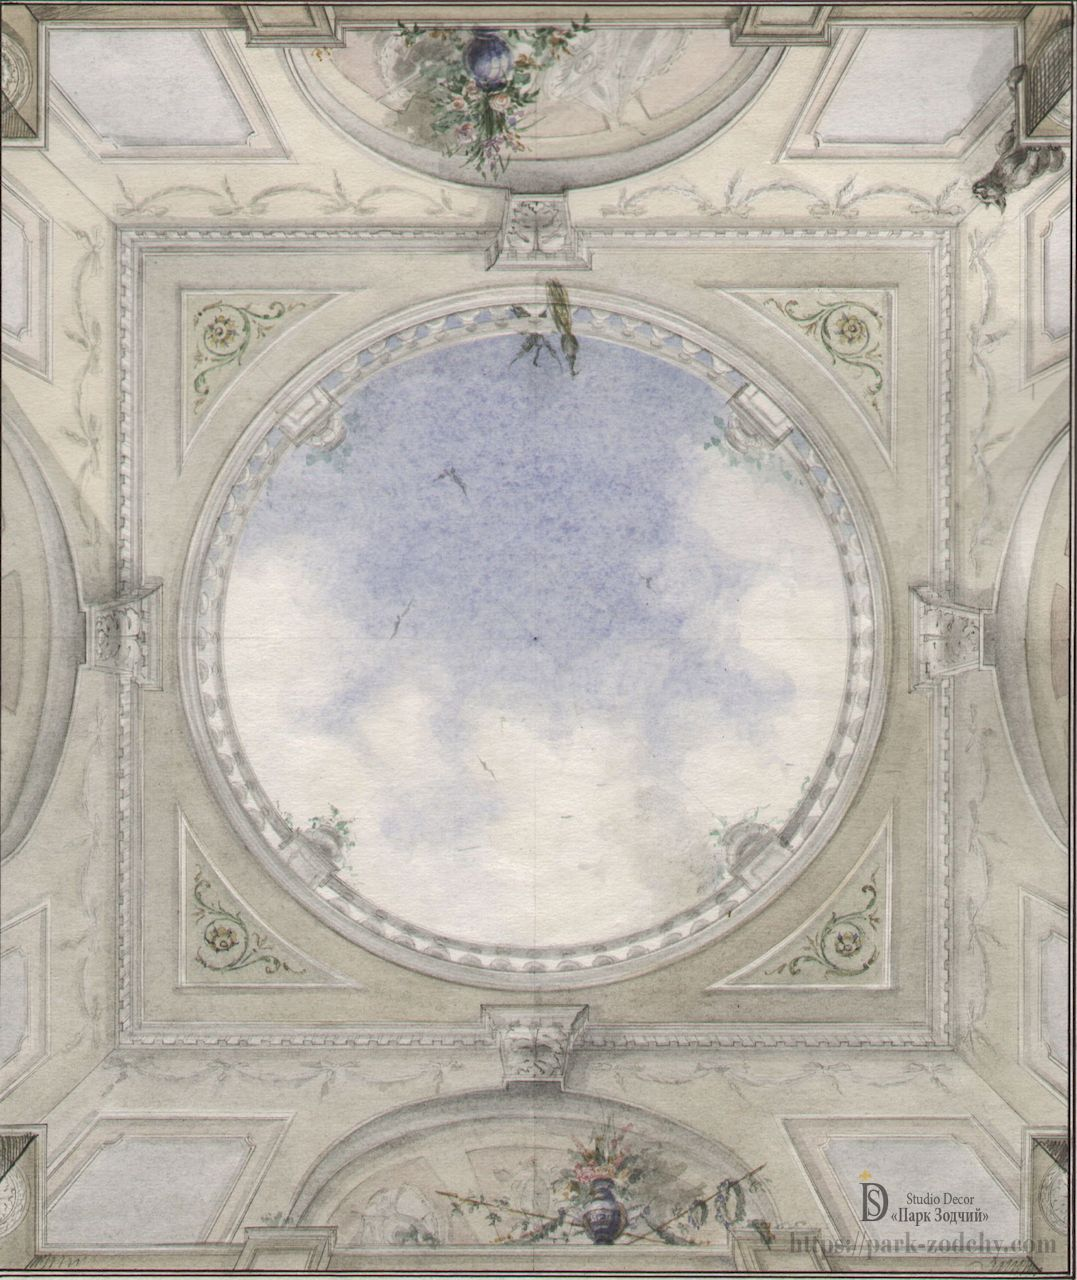 The project of painting the ceiling